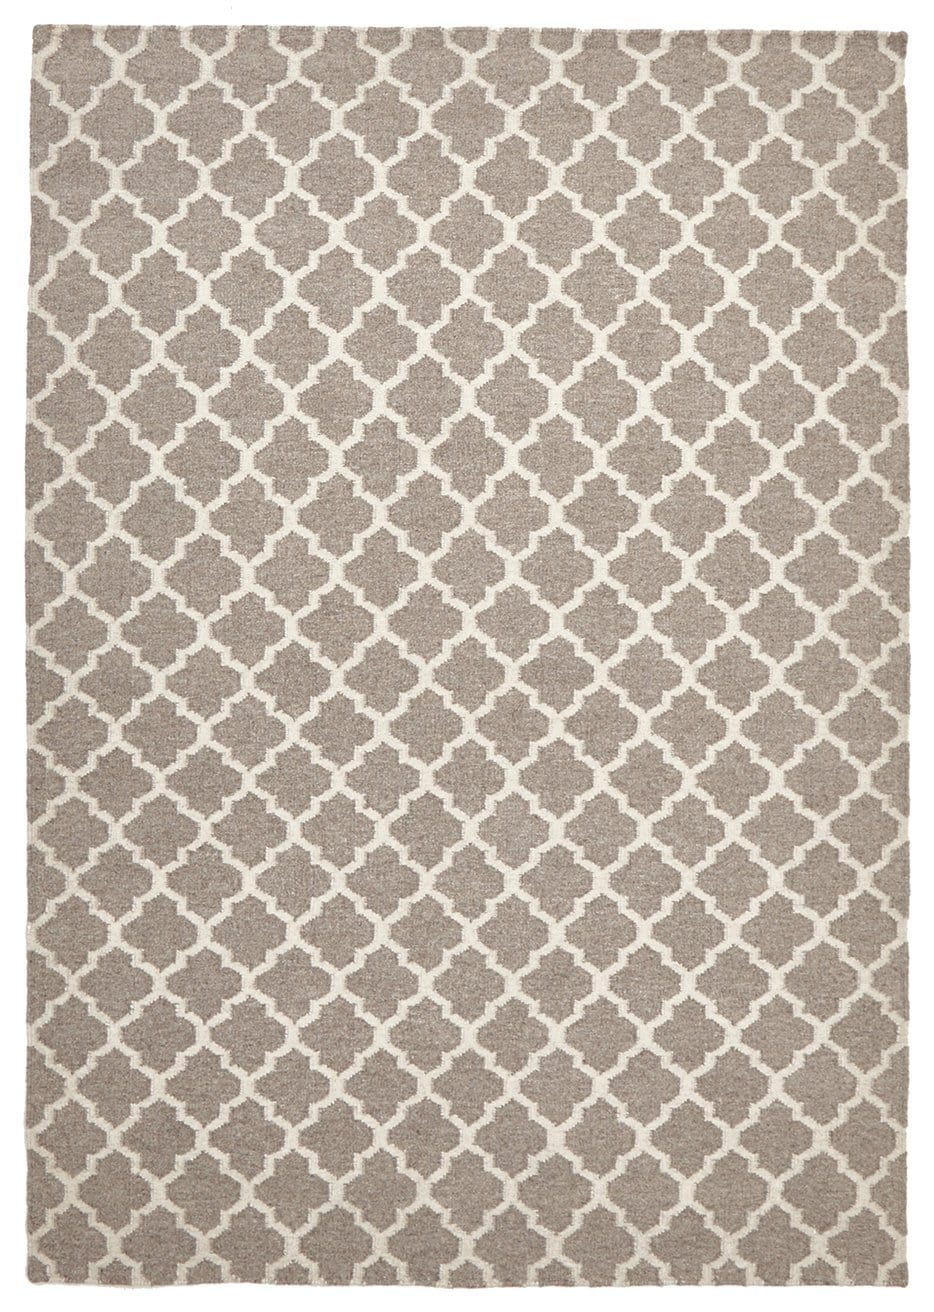 x weave trigas instructions coloured large rug rugs multi buy at now care flat